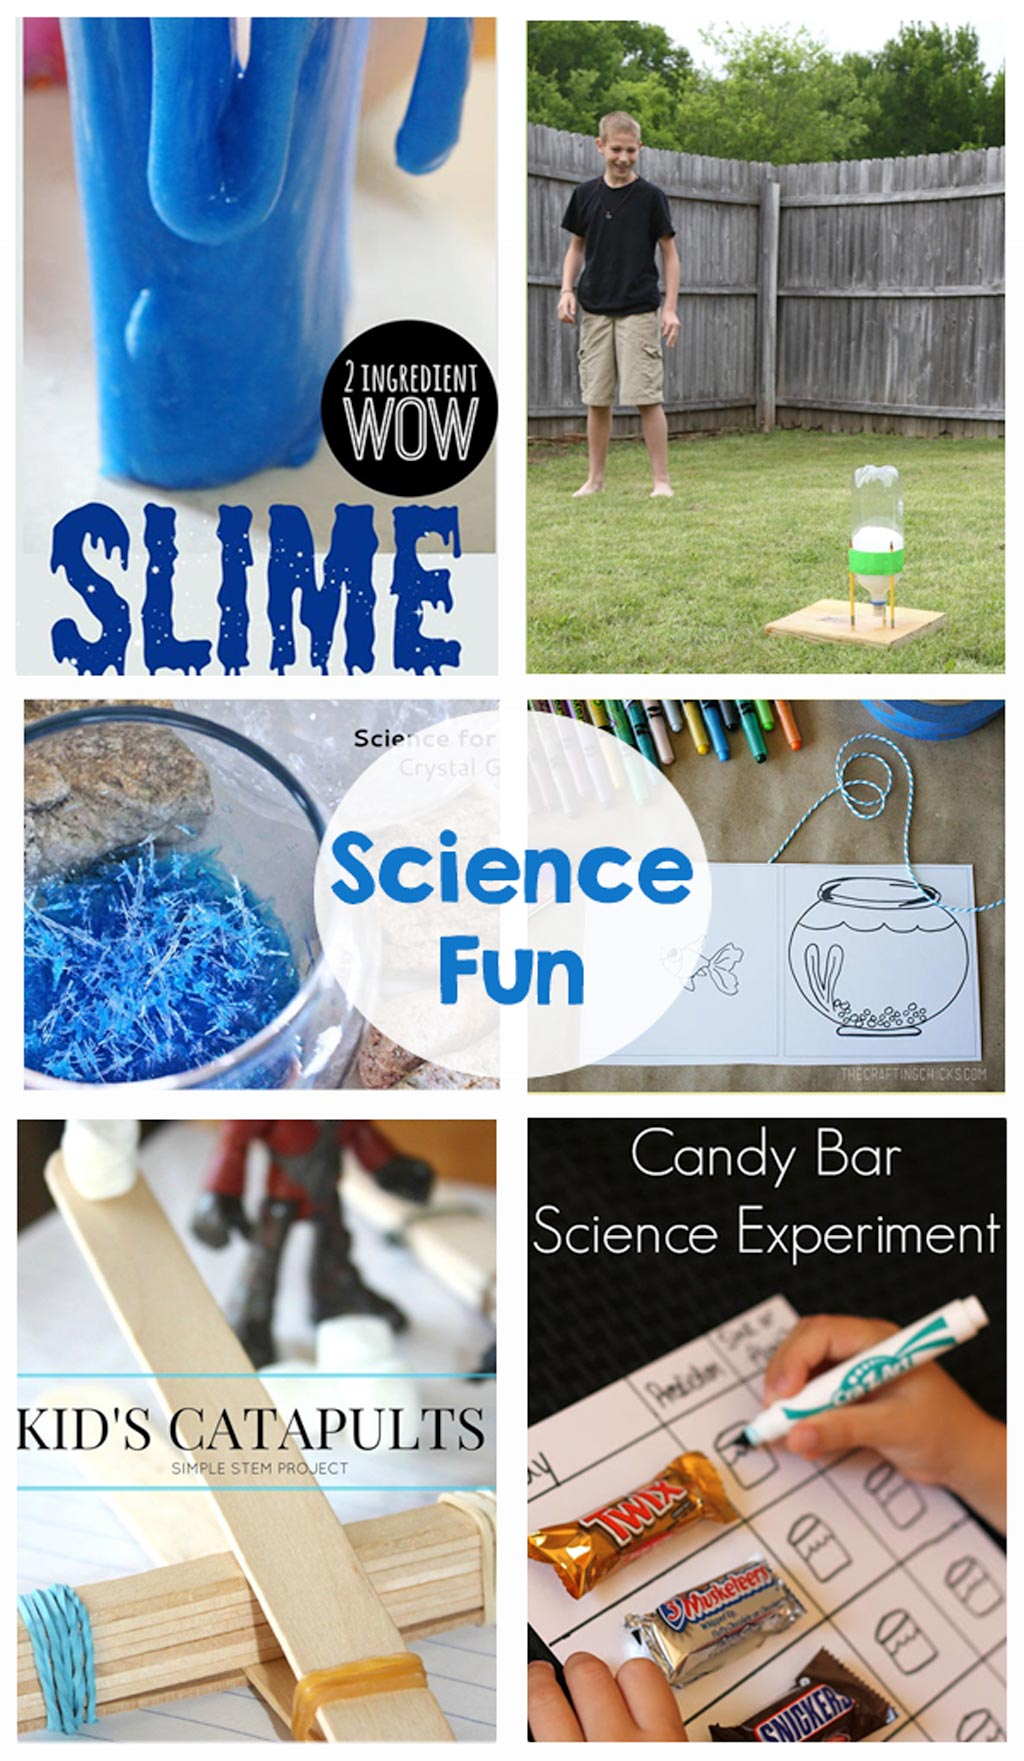 Science Fun - Game, printables, science experiments, crafts, kids activities, and STEM - Everything you need to keep kids entertained this summer!